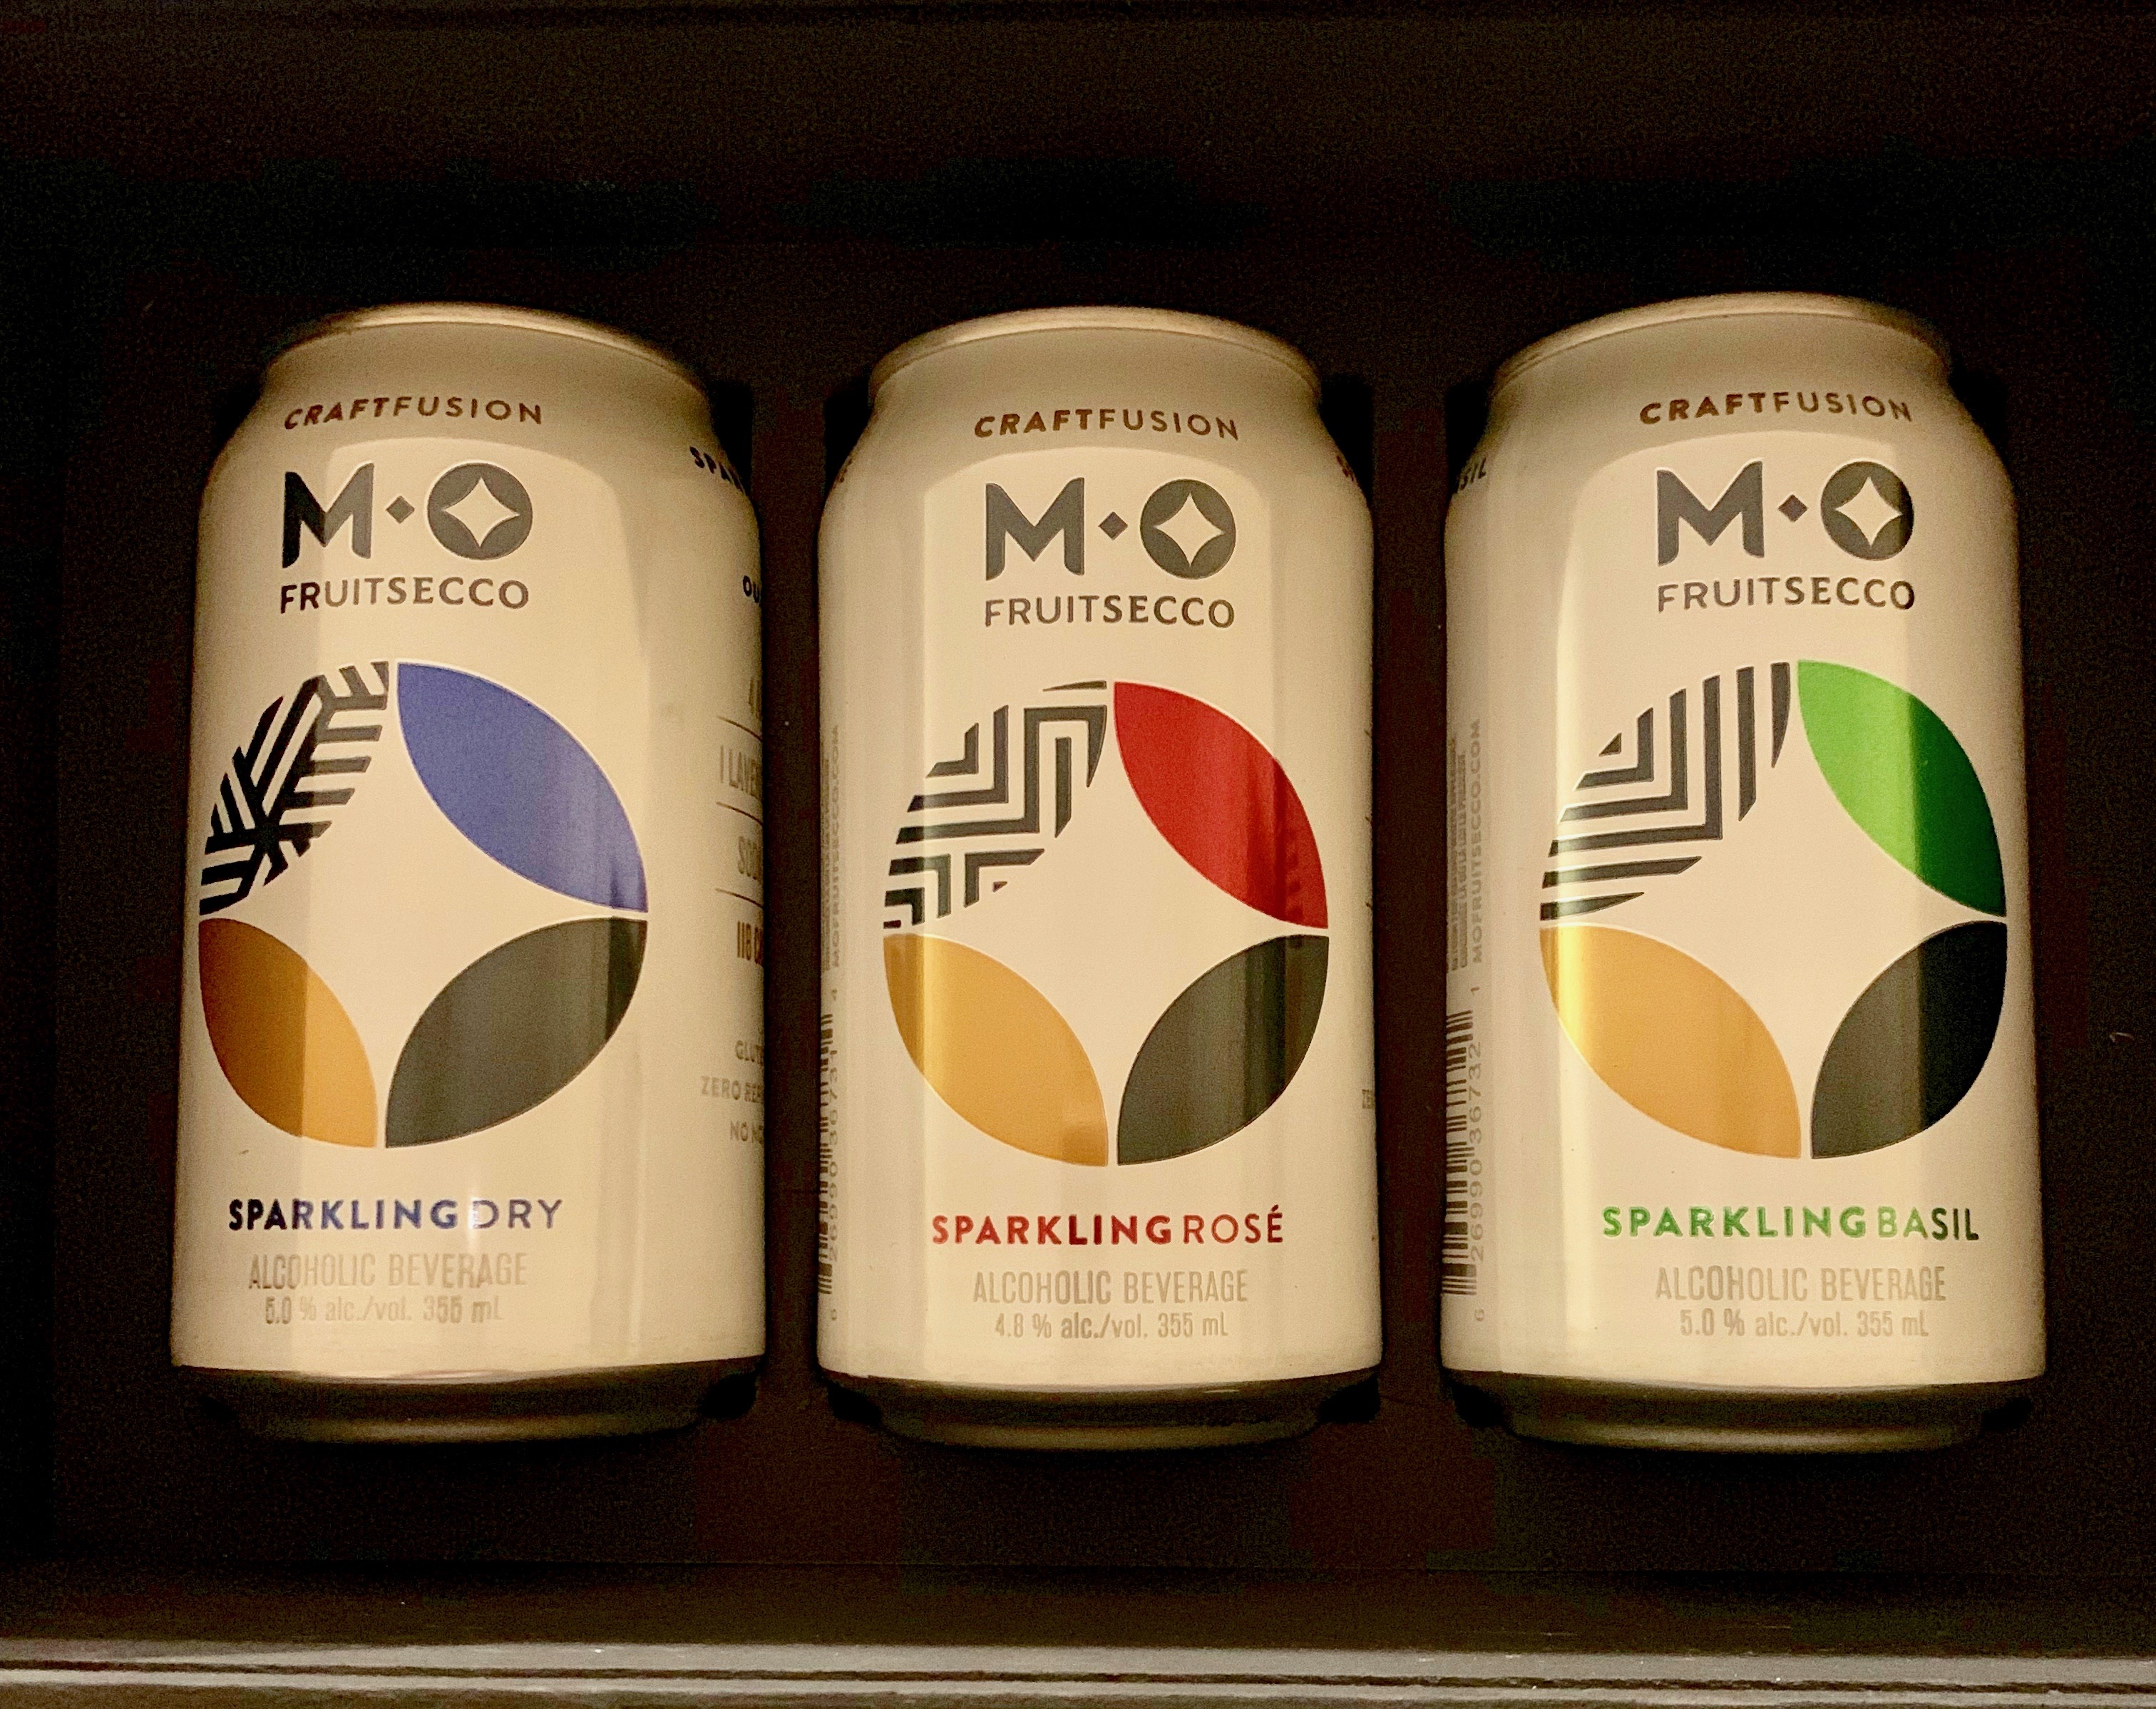 NEW SPARKLING BEVERAGE HITS THE B.C., ALBERTA MARKET IN TIME FOR SUMMER FROM M.O FRUITSECCO